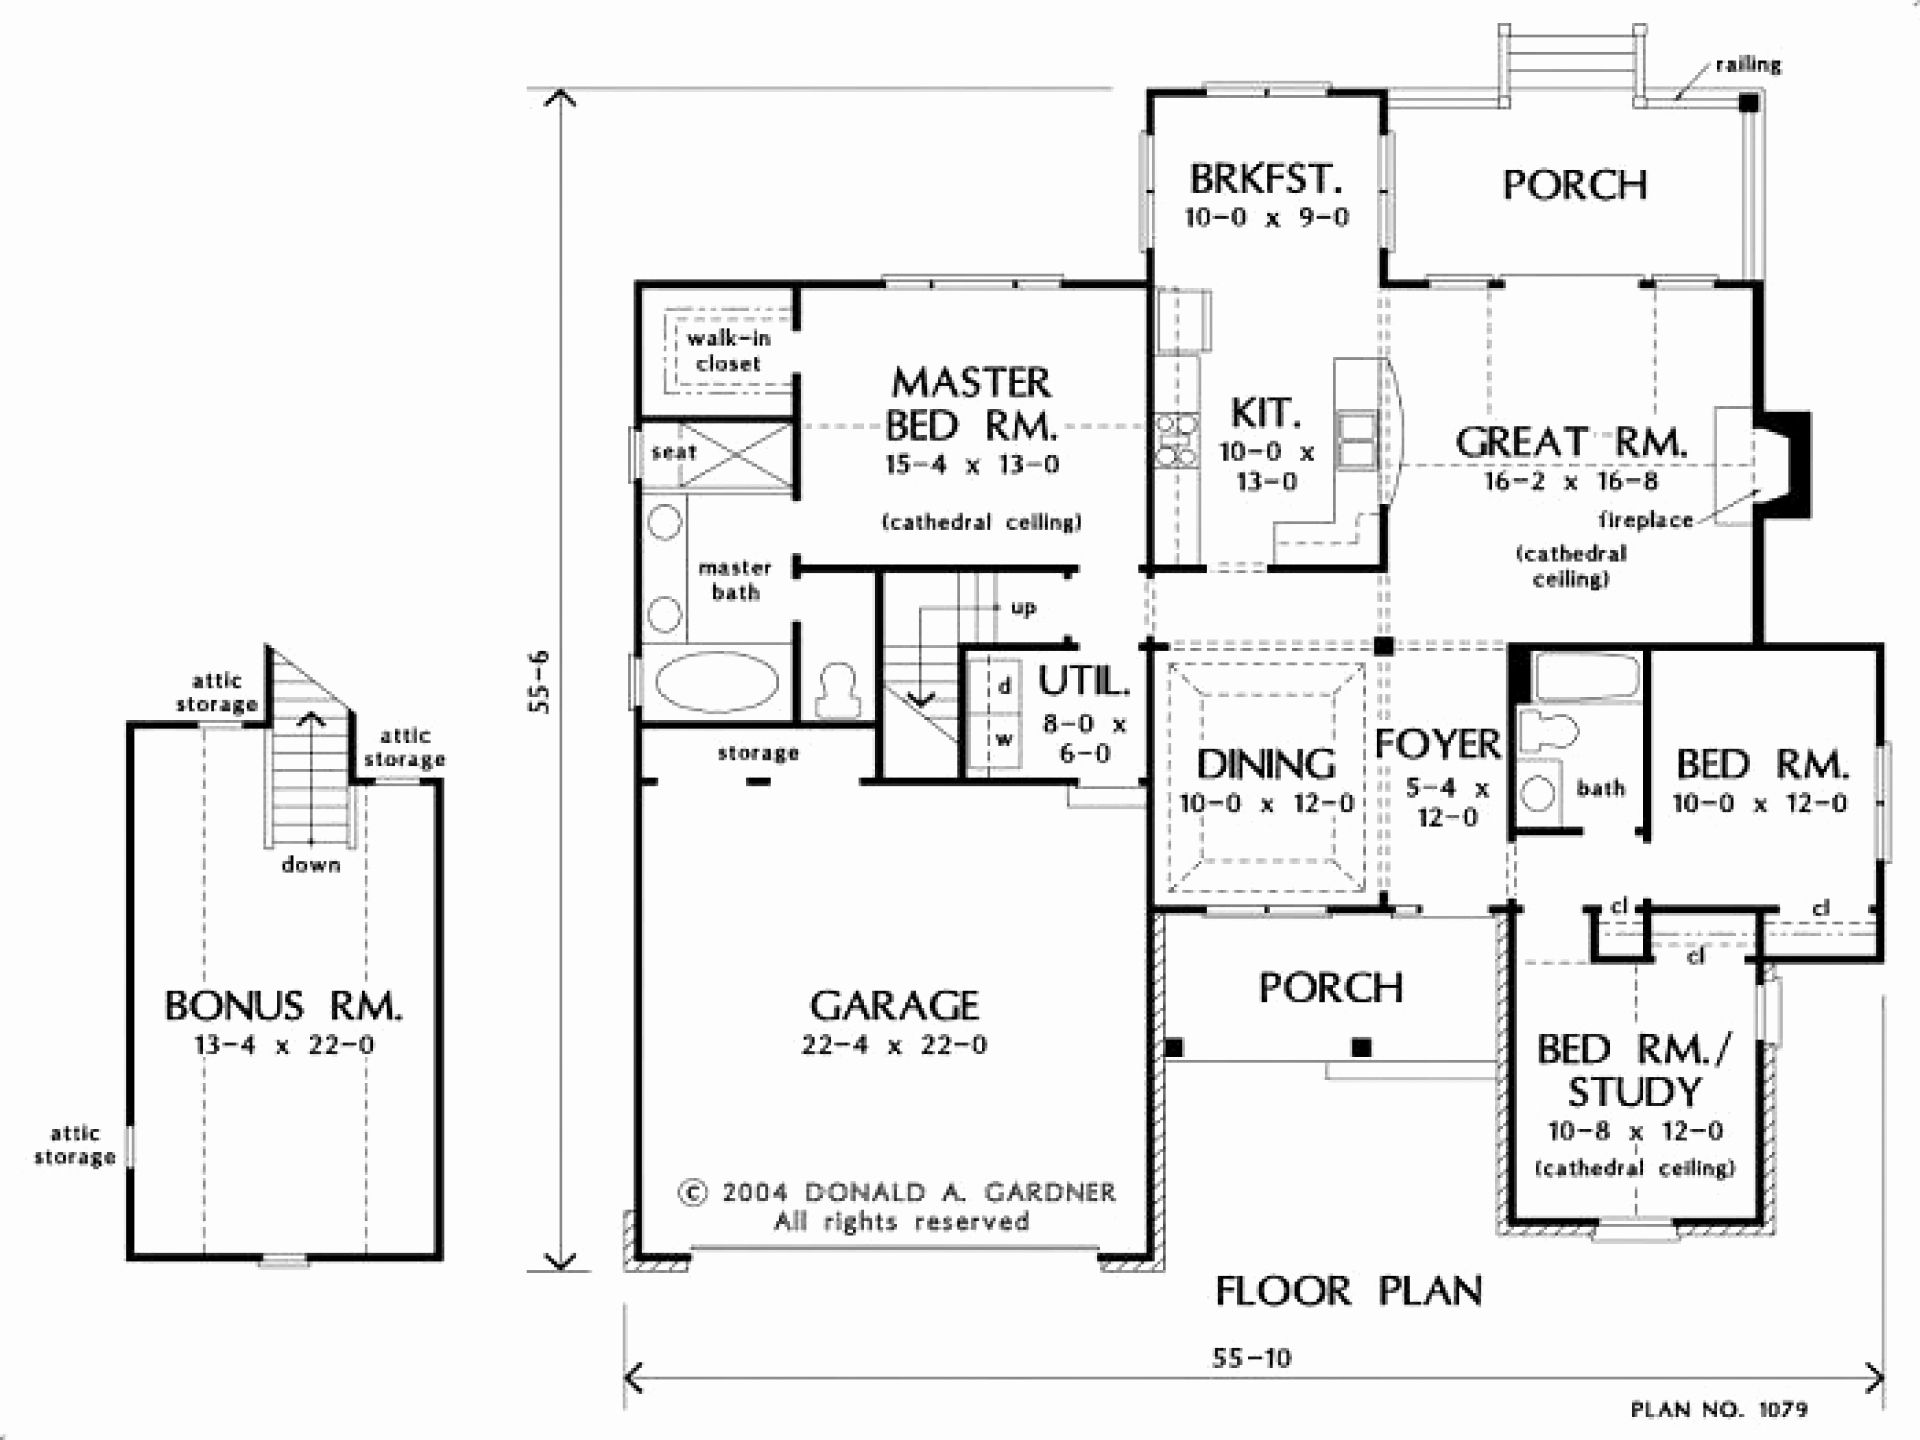 Draw House Plans Online Elegant Draw House Floor Plans Line With Draw House Plans Online Floor Plan Sketch Floor Plan Drawing Barndominium Floor Plans